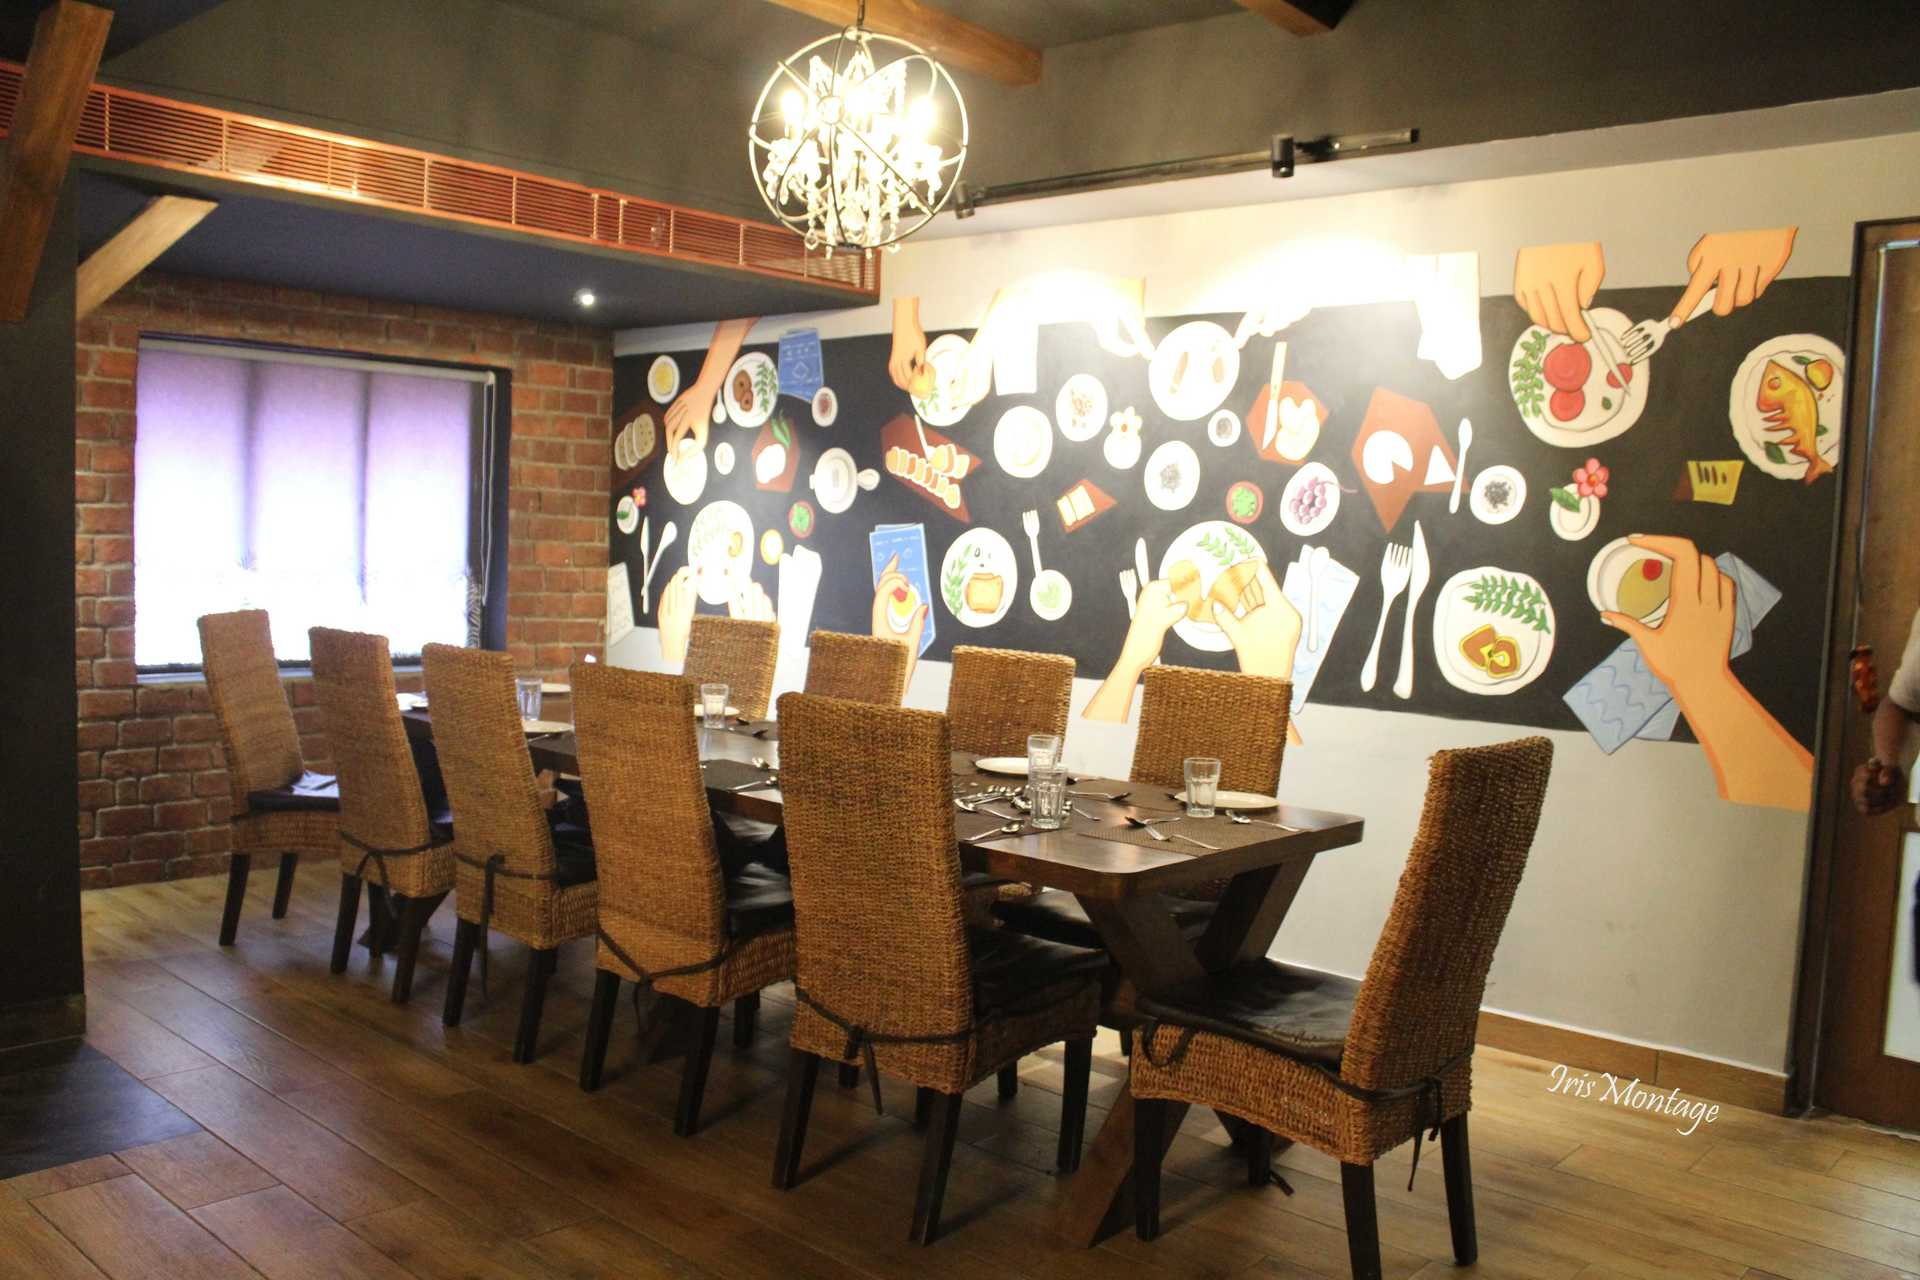 IrisMontage - 27 culinary street chennai_review